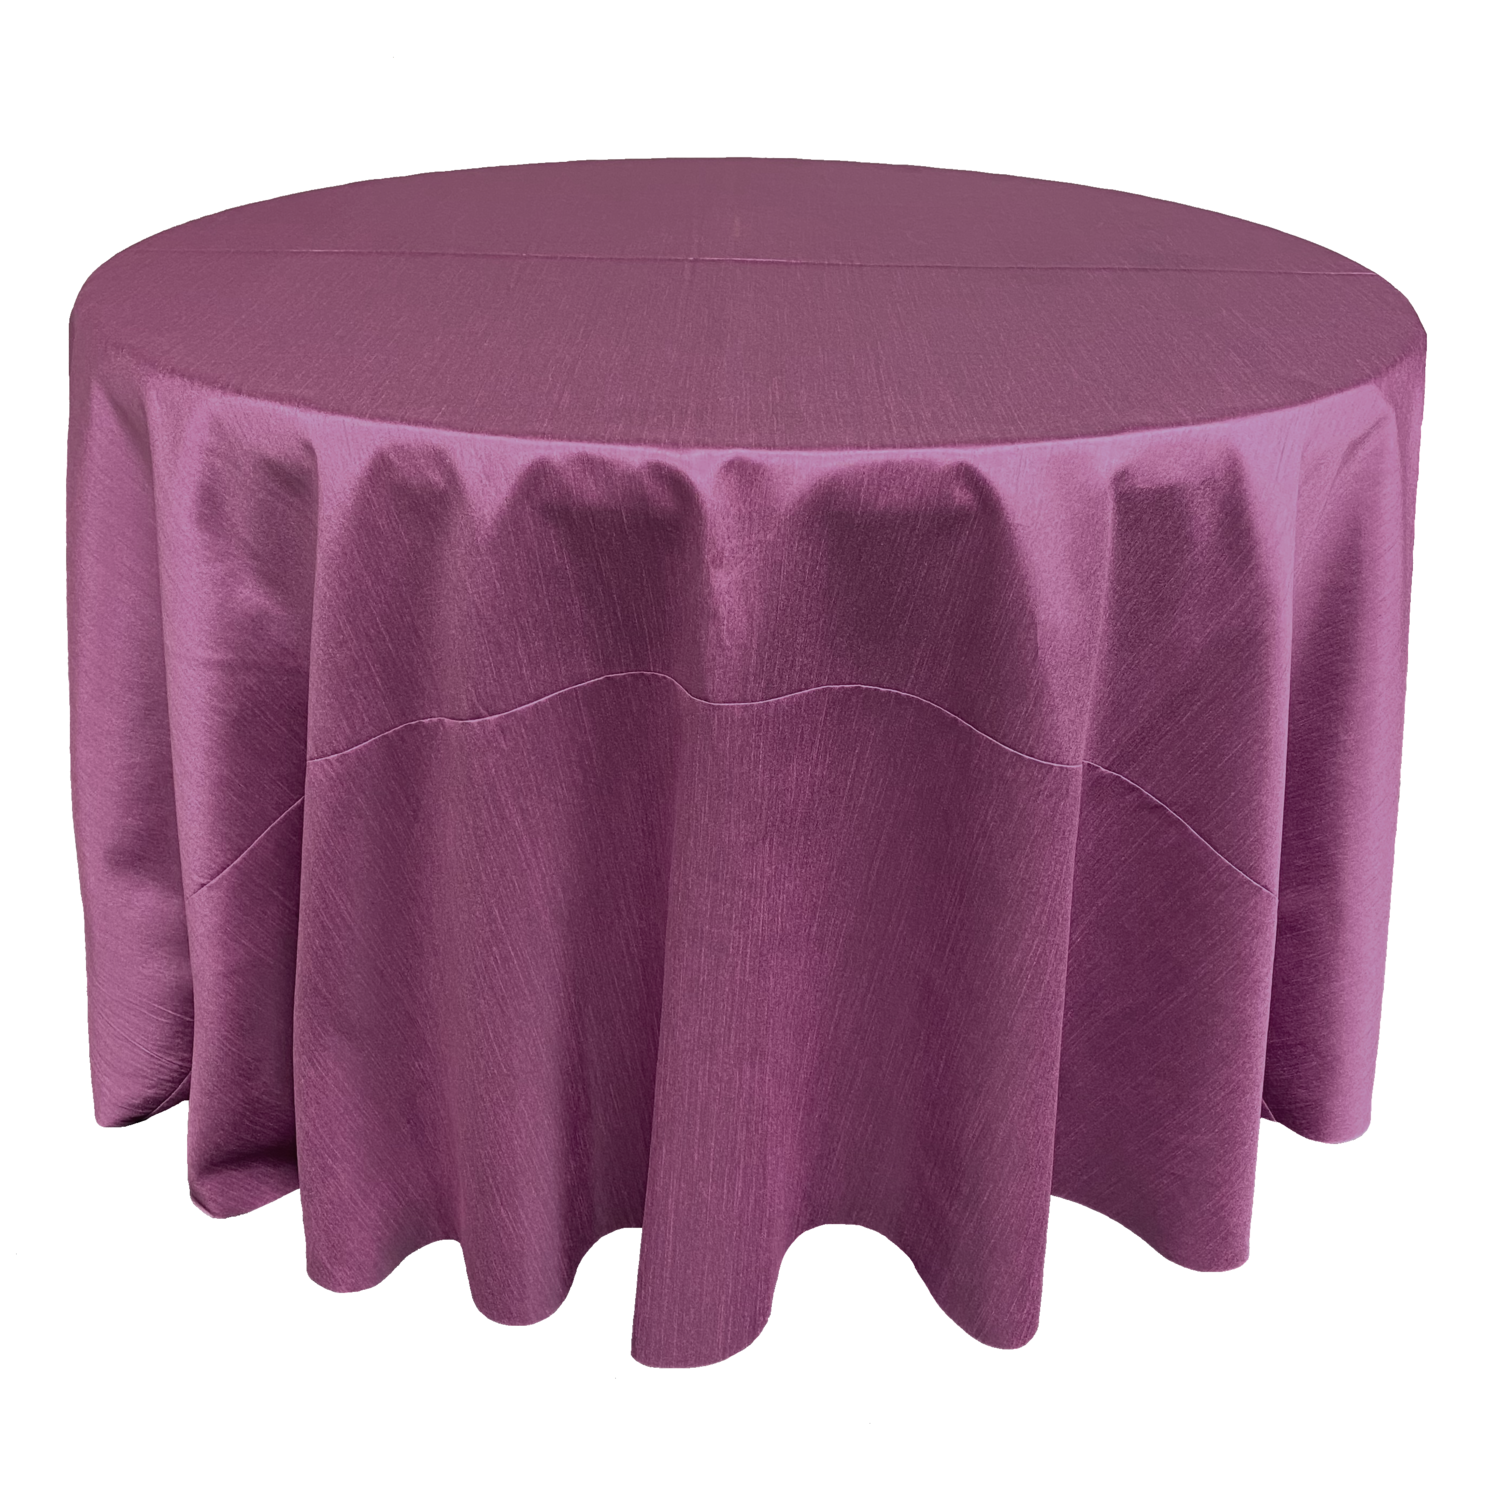 Orchid Shantung Linens